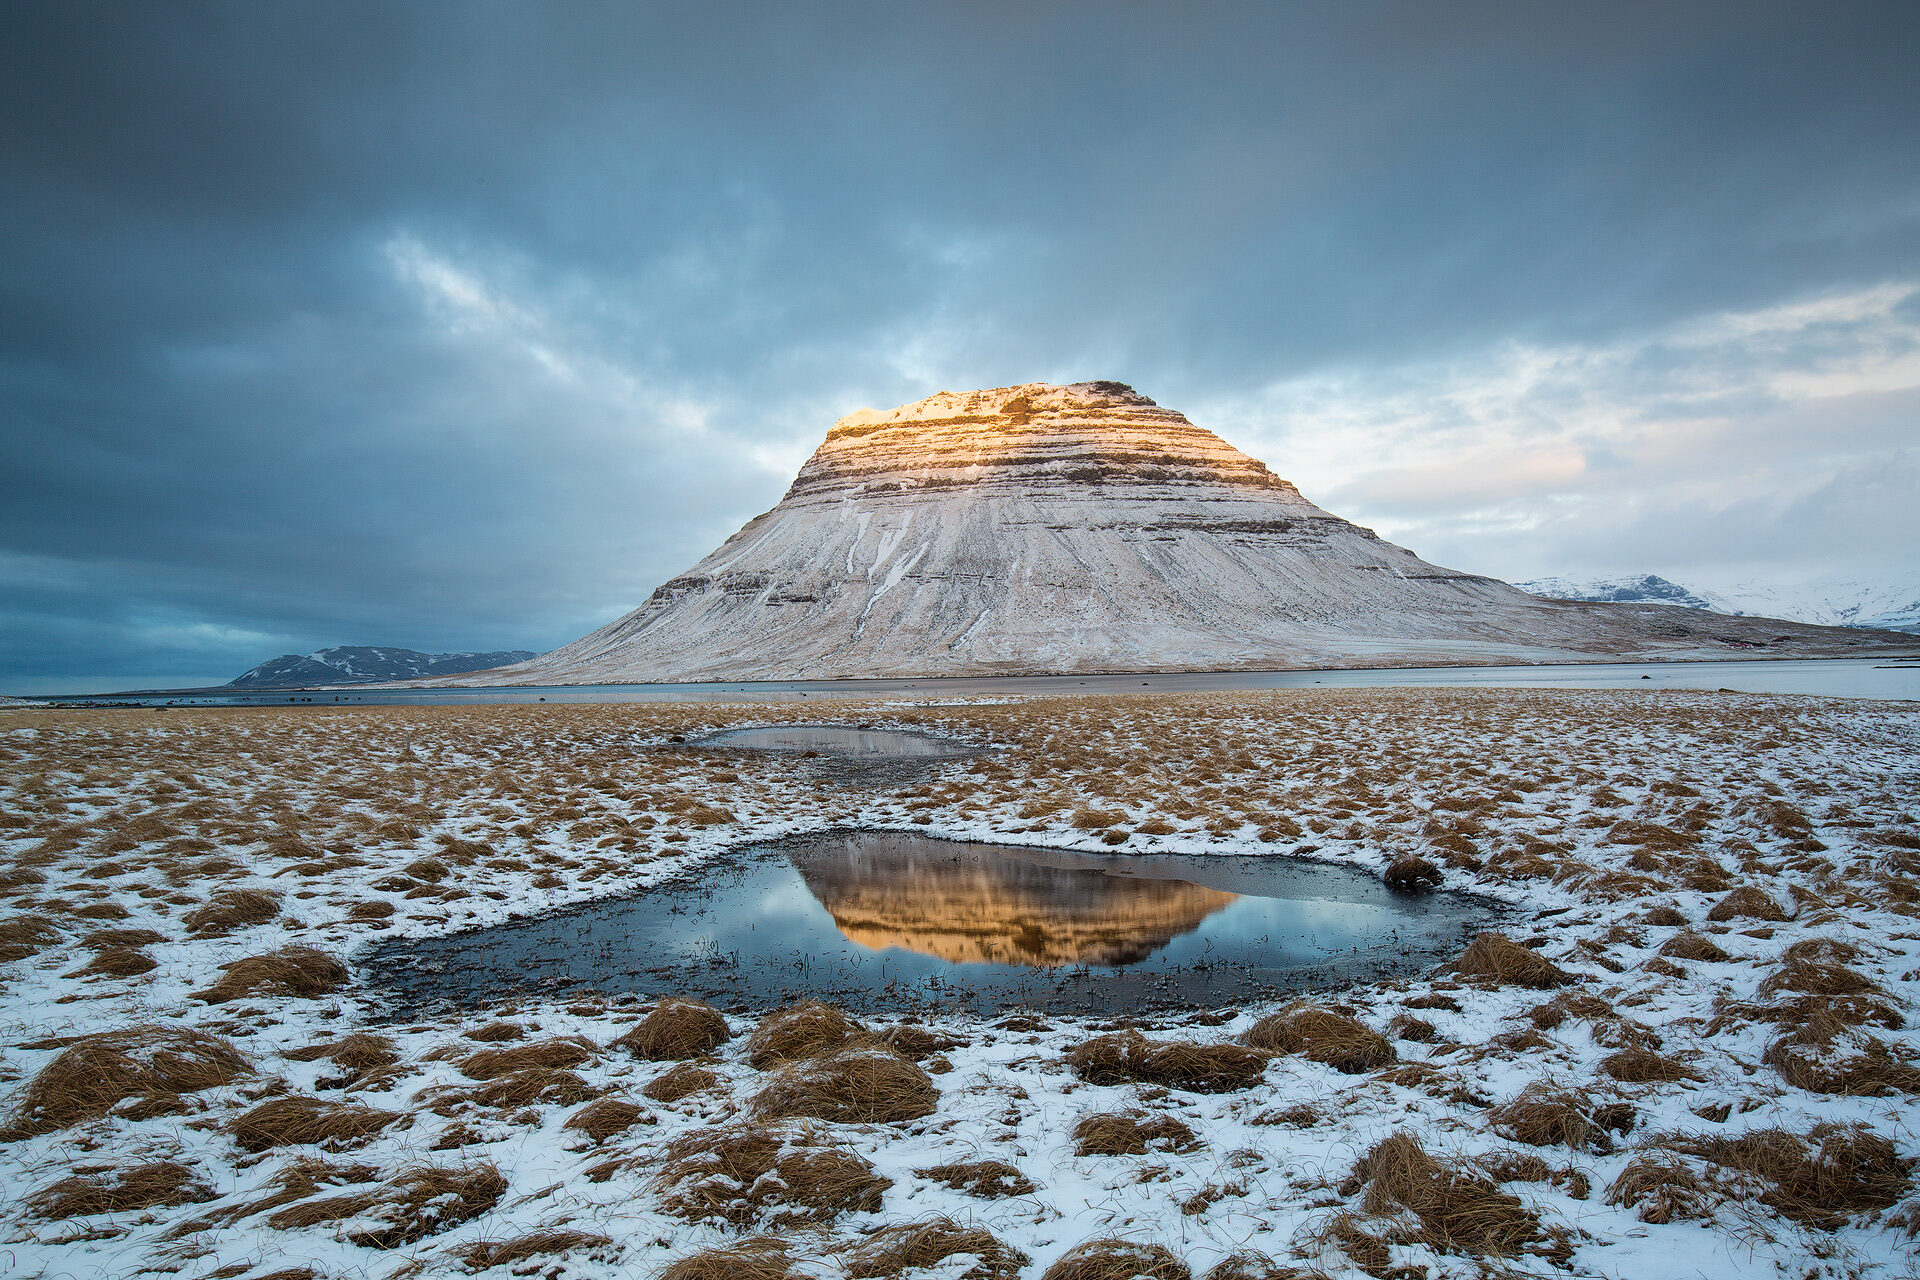 2018 MONTPHOTO - MOUNTAIN CATEGORY - HIGLY COMMENDED